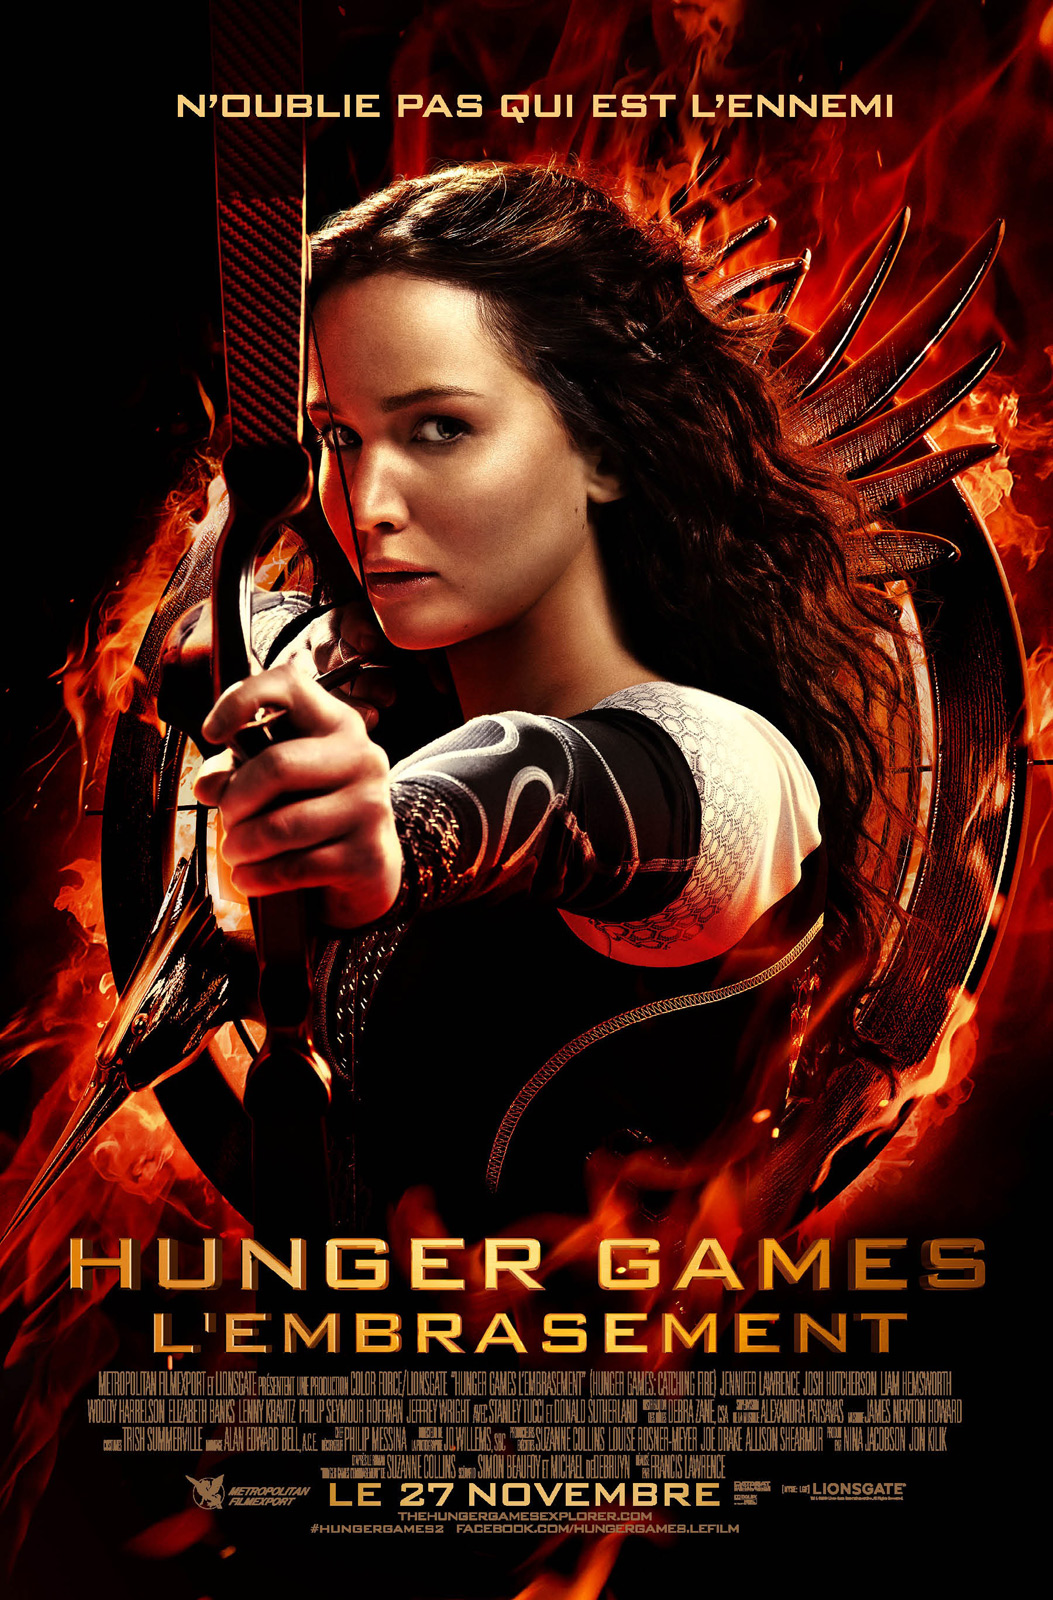 The-Hunger-Games-Catching-Fire-Lembrasement-Affiche-Finale-France